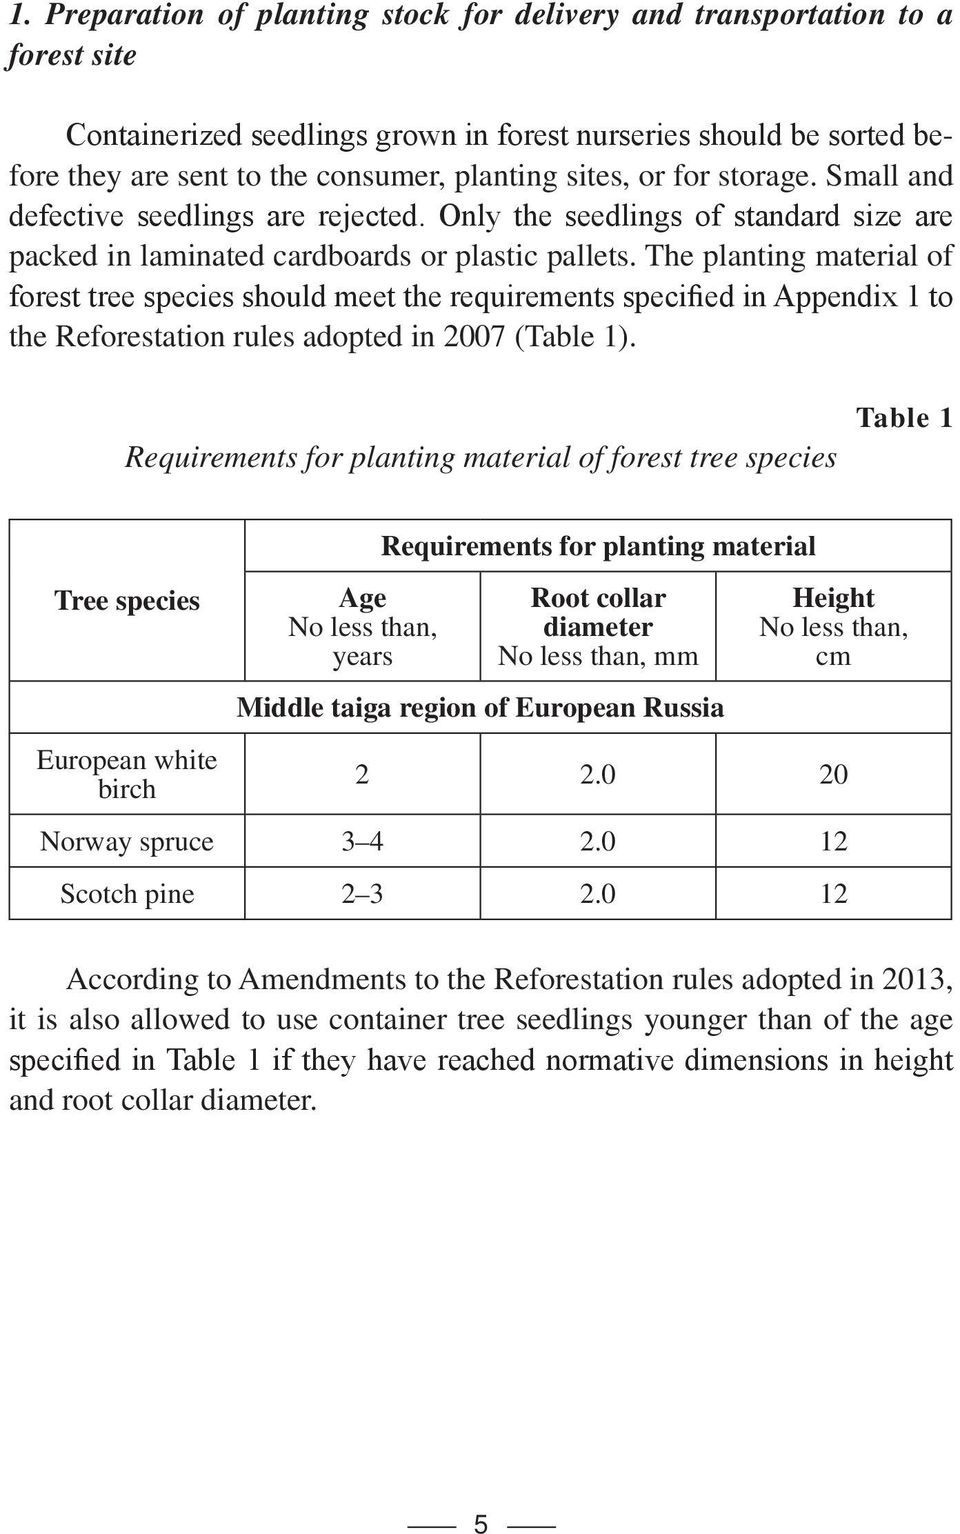 The planting material of forest tree species should meet the requirements specified in Appendix 1 to the Reforestation rules adopted in 2007 (Table 1).